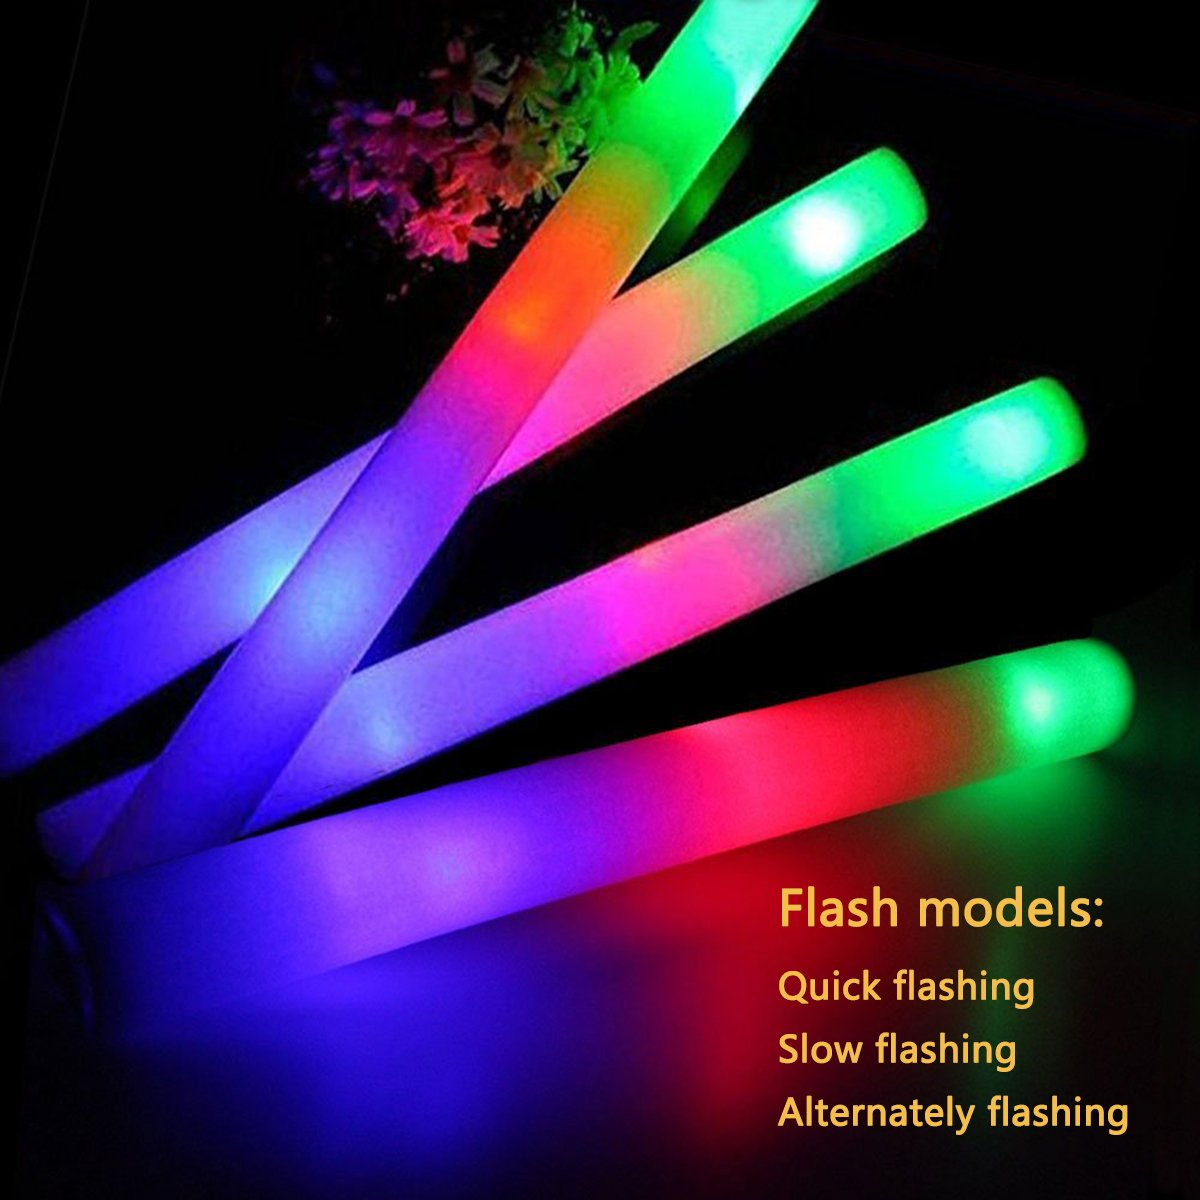 ColorHome Glow Sticks Party Pack- 100 Light Up Foam Sticks with 3 Modes LED Flashing,Glow in The Dark Party Supplies for Birthday Parties,Weddings,Concerts,Christmas,Halloween,Hawaiian Luau by ColorHome (Image #3)